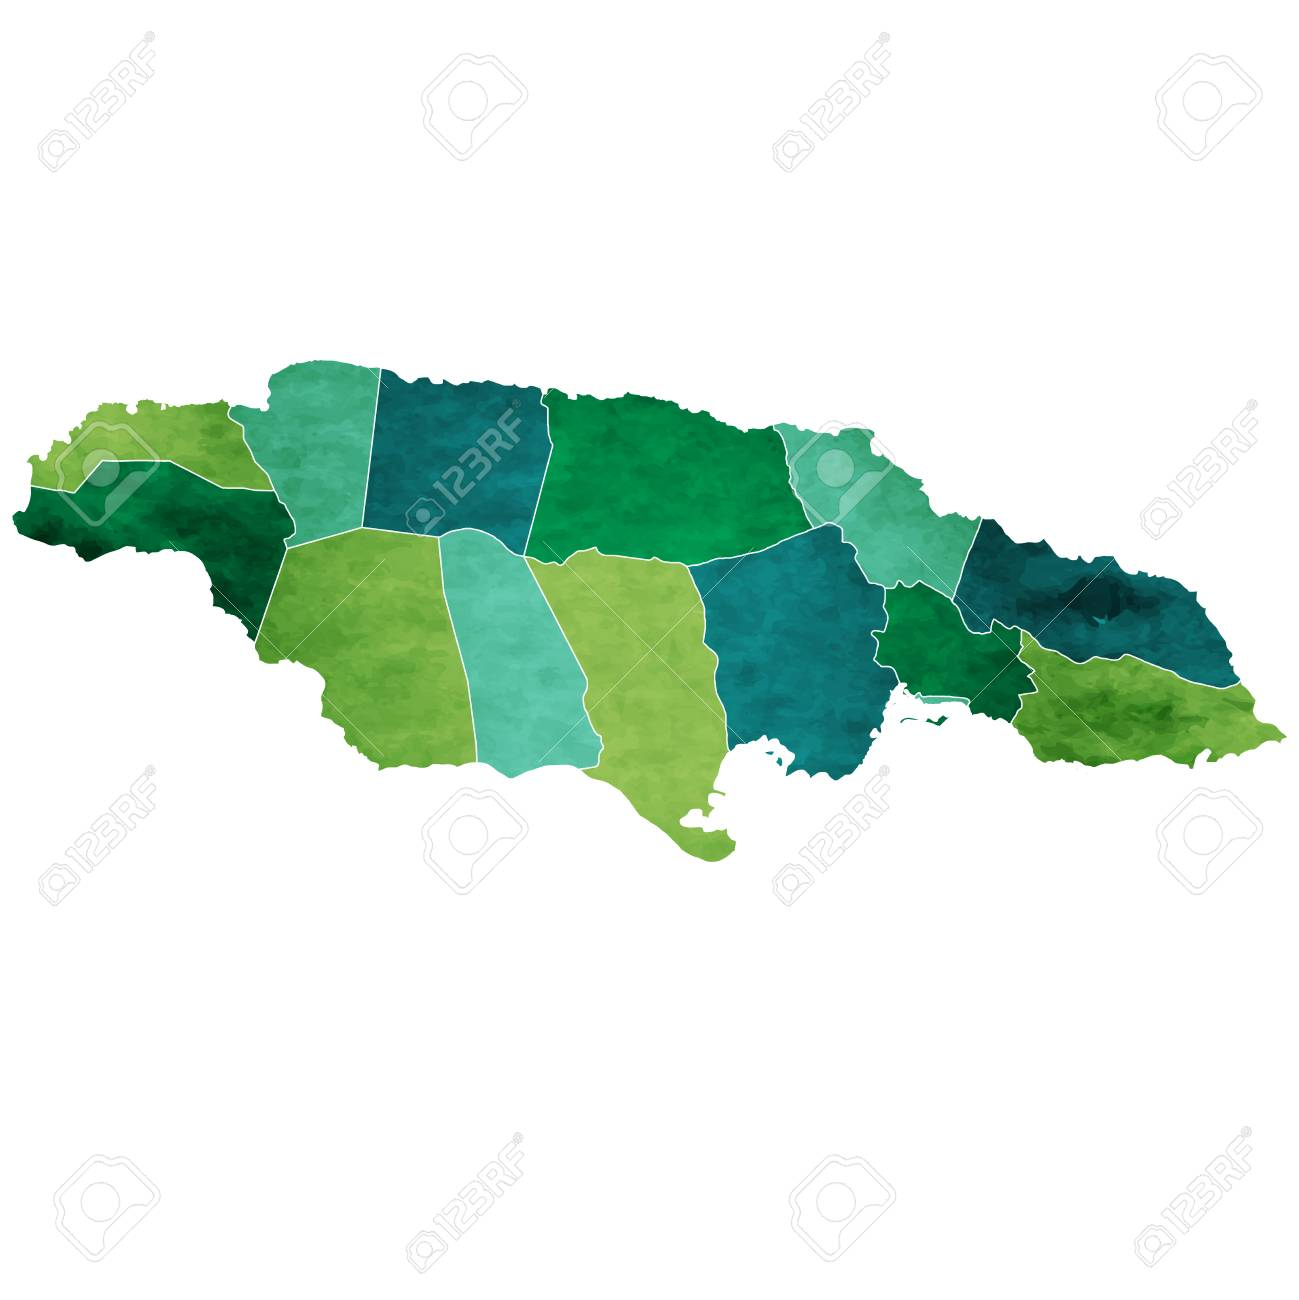 Jamaica World map country icon